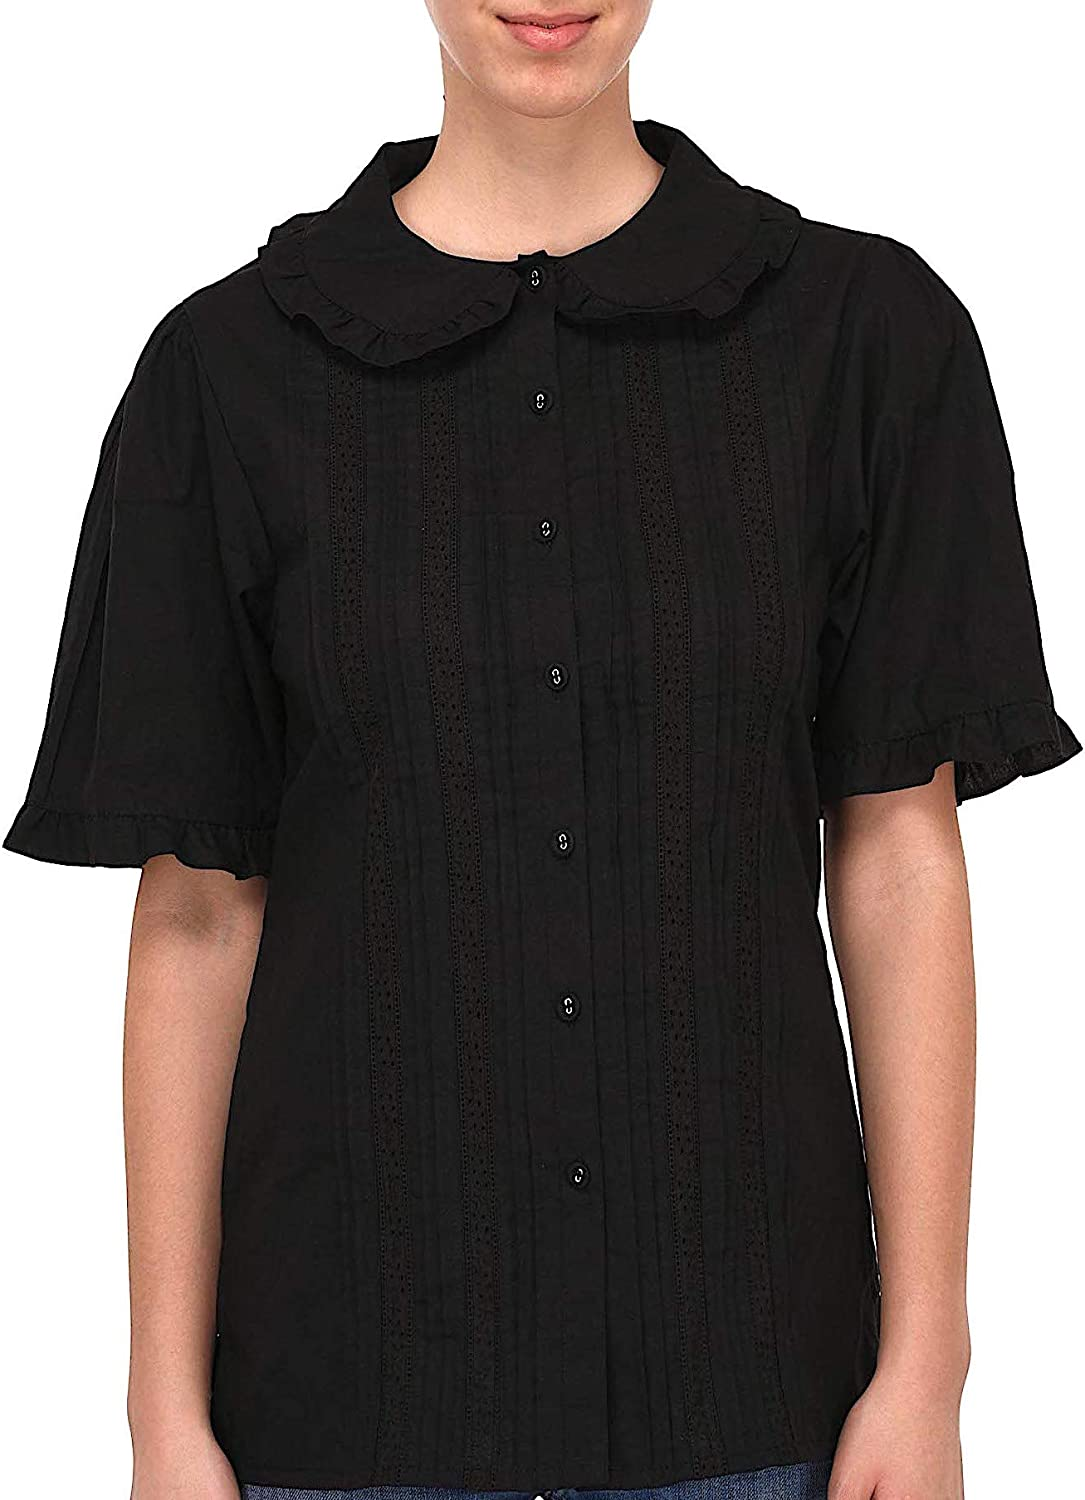 Cotton Lane Plus Size Black Cotton Peter Pan Collar Blouse